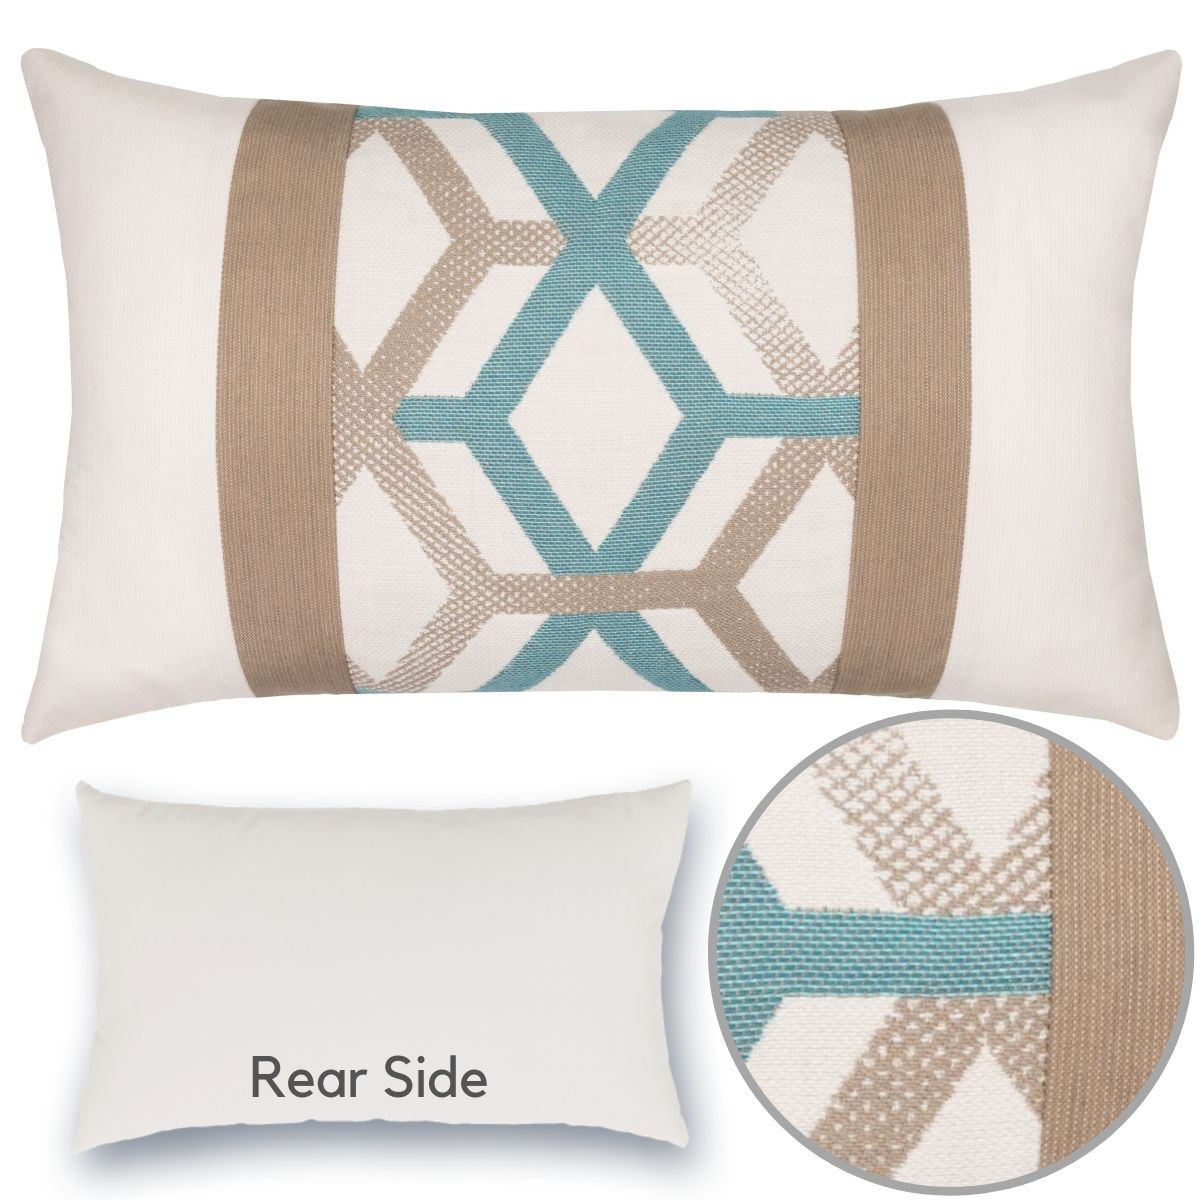 lagoon-lines-lumbar pillow by Elaine Smith